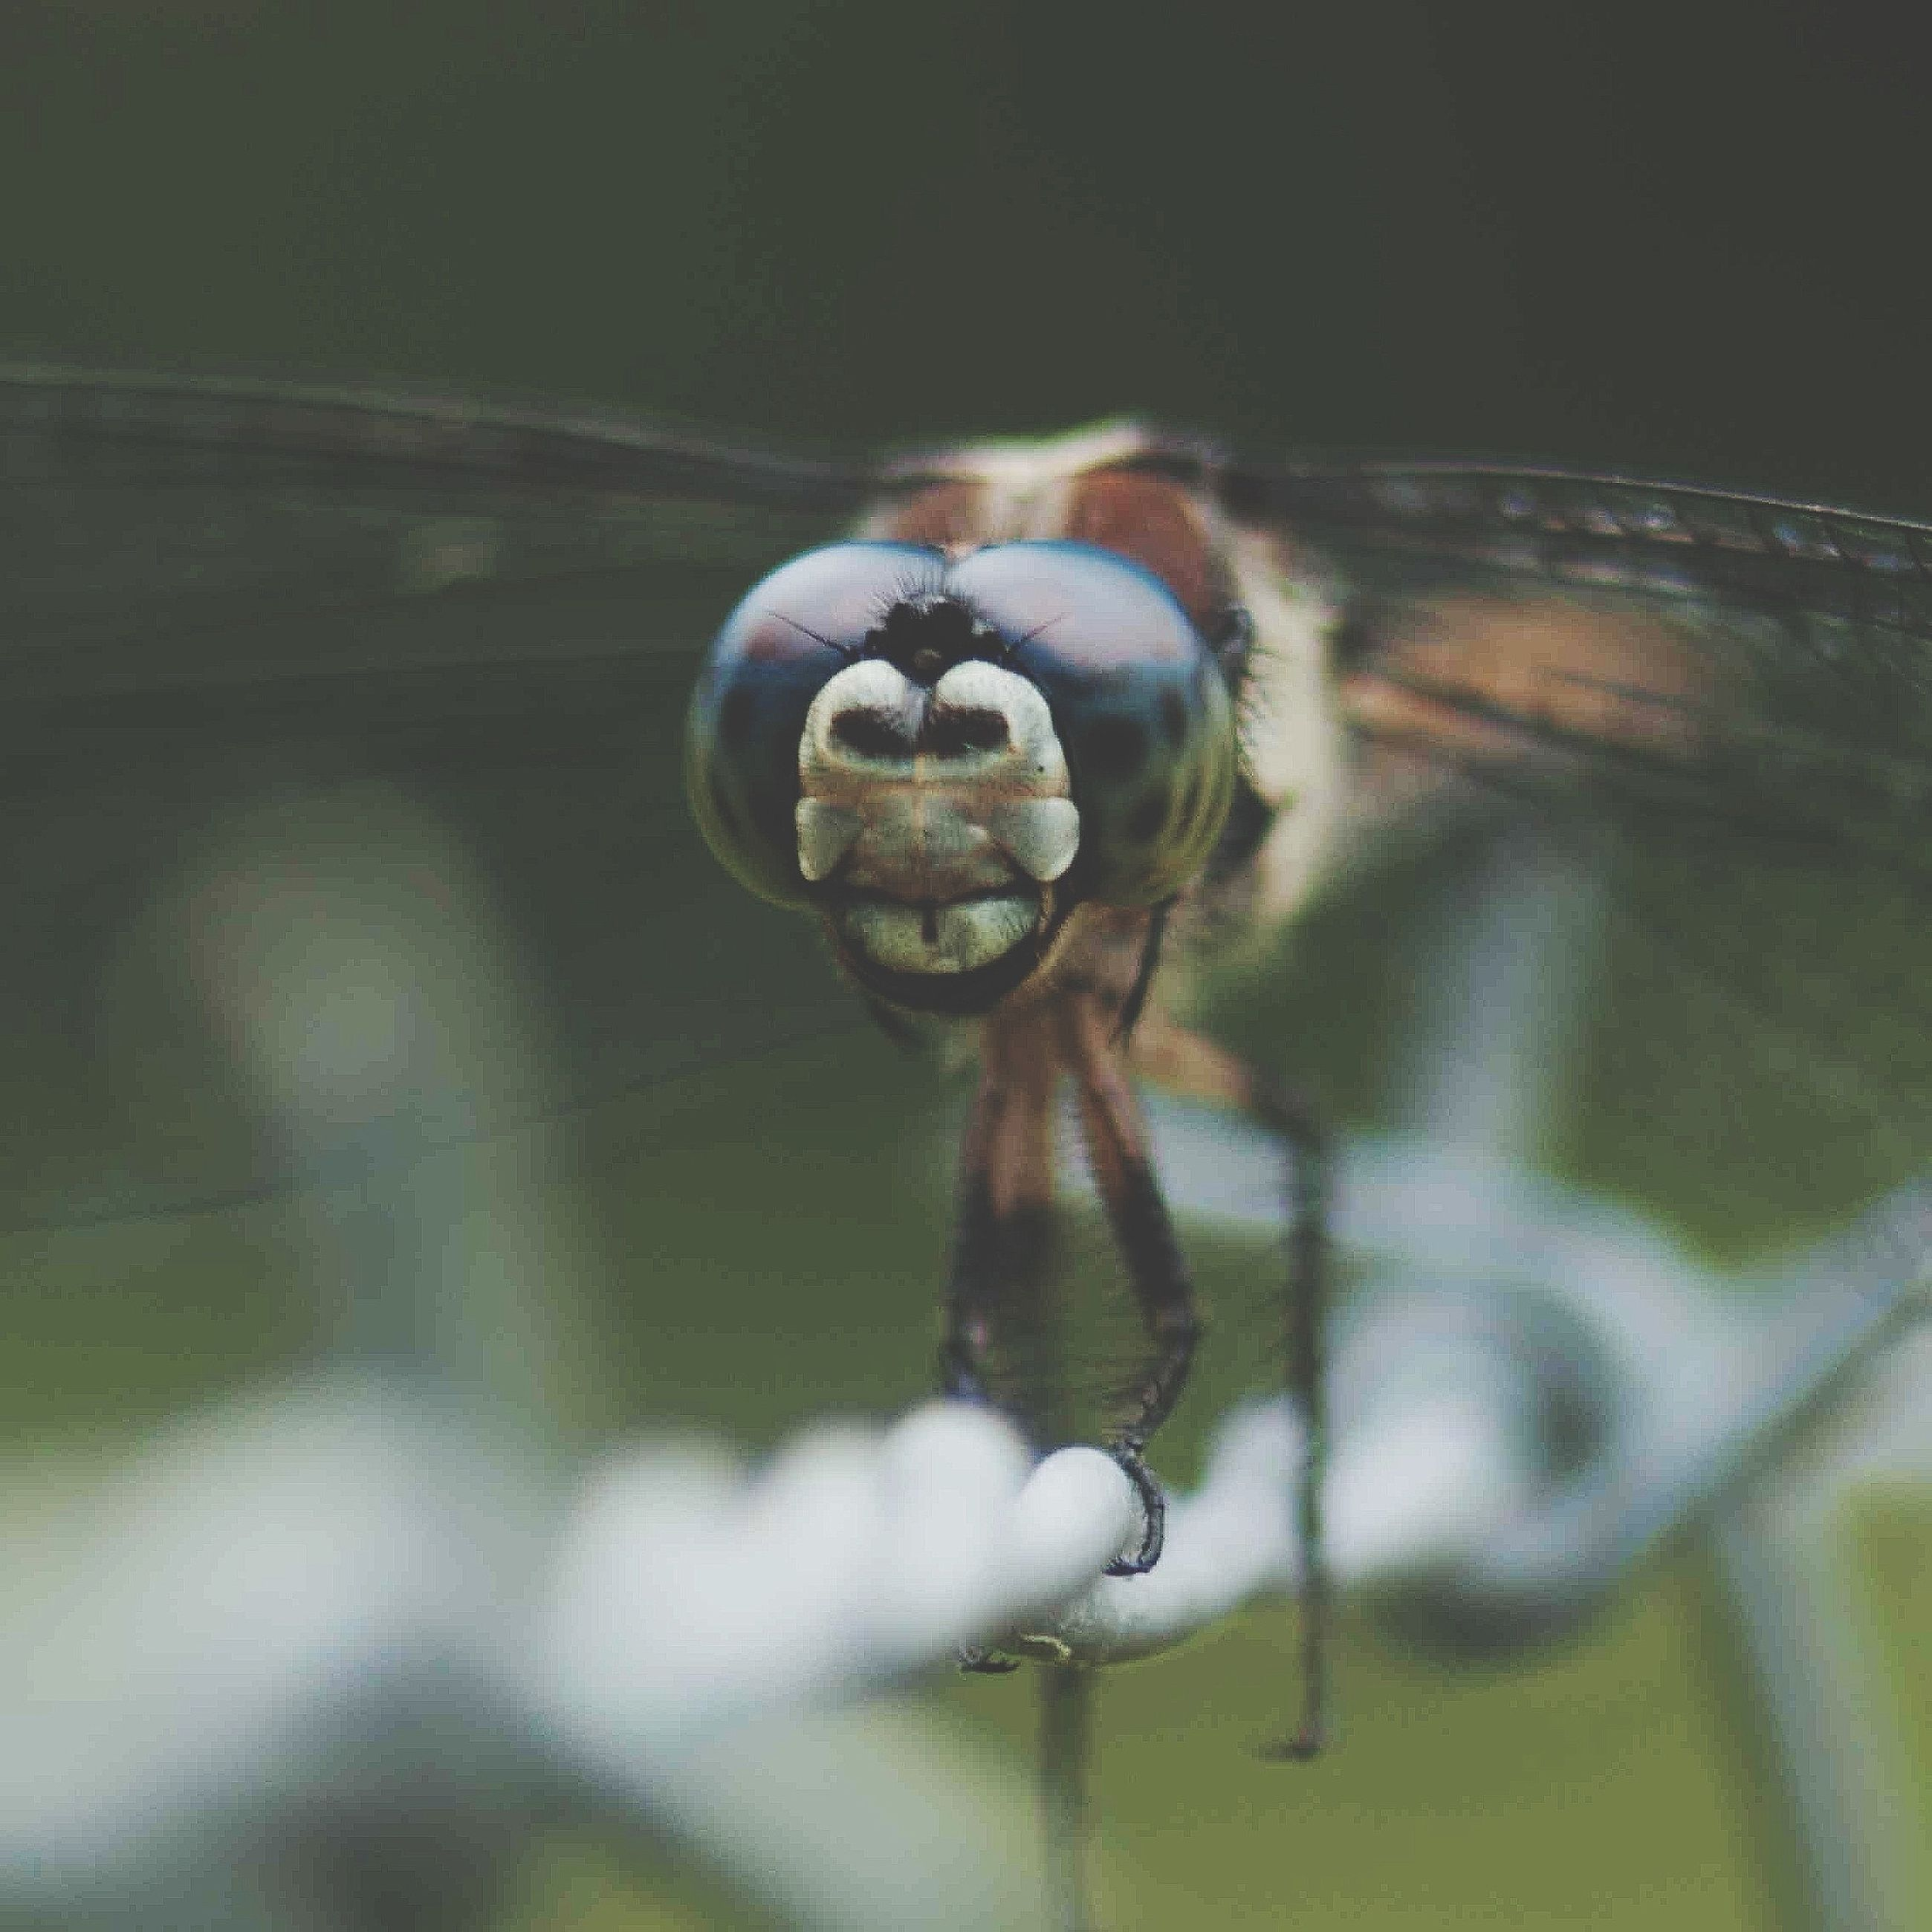 one animal, animal themes, water, animals in the wild, wildlife, close-up, reflection, insect, focus on foreground, selective focus, wet, drop, no people, day, outdoors, nature, motion, transparent, glass - material